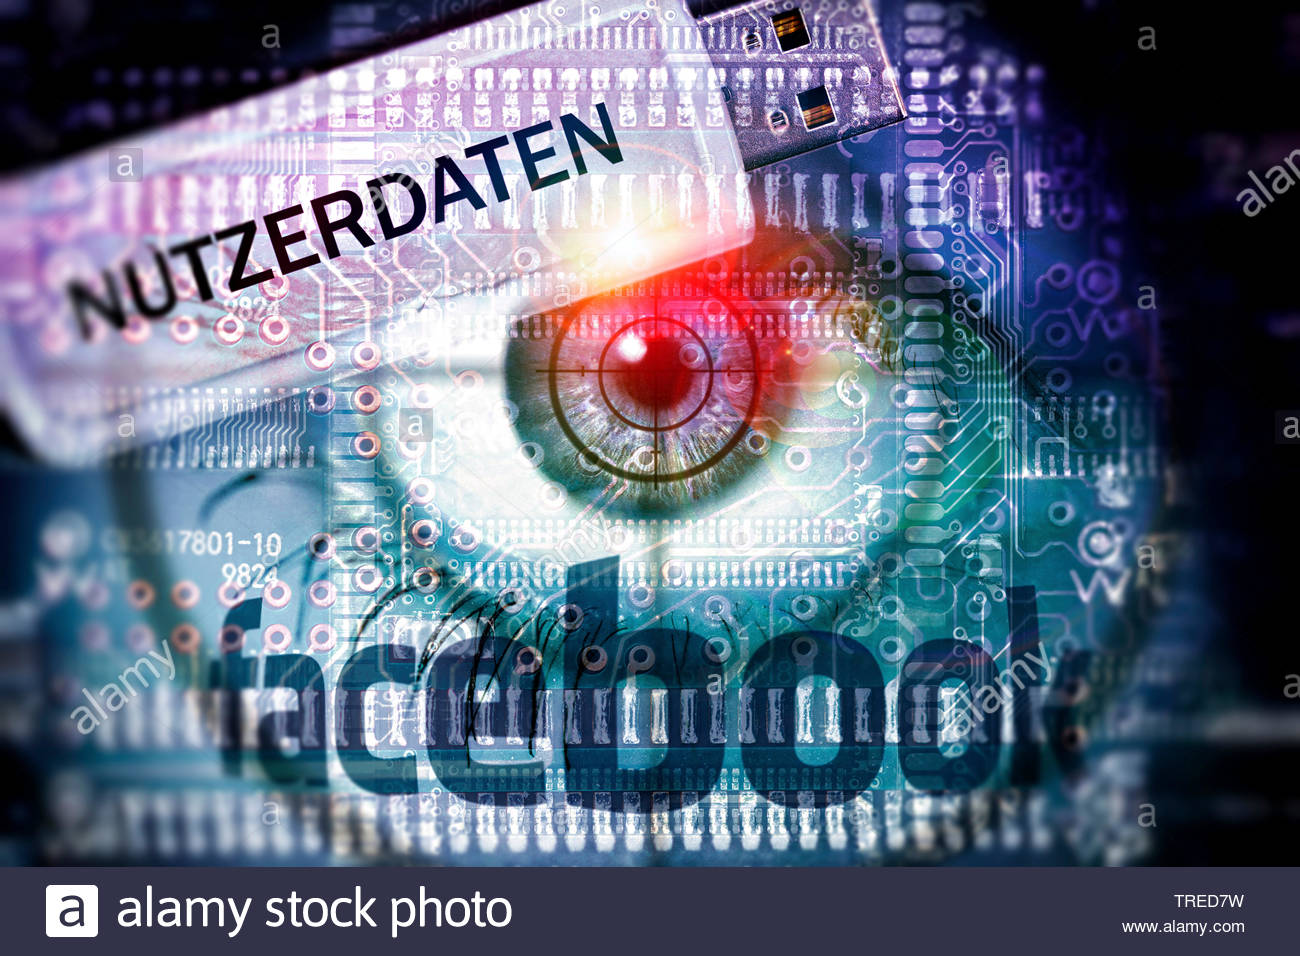 Computer grafic with red eyeball, Facebook logo and USB drive - protection of user data Stock Photo